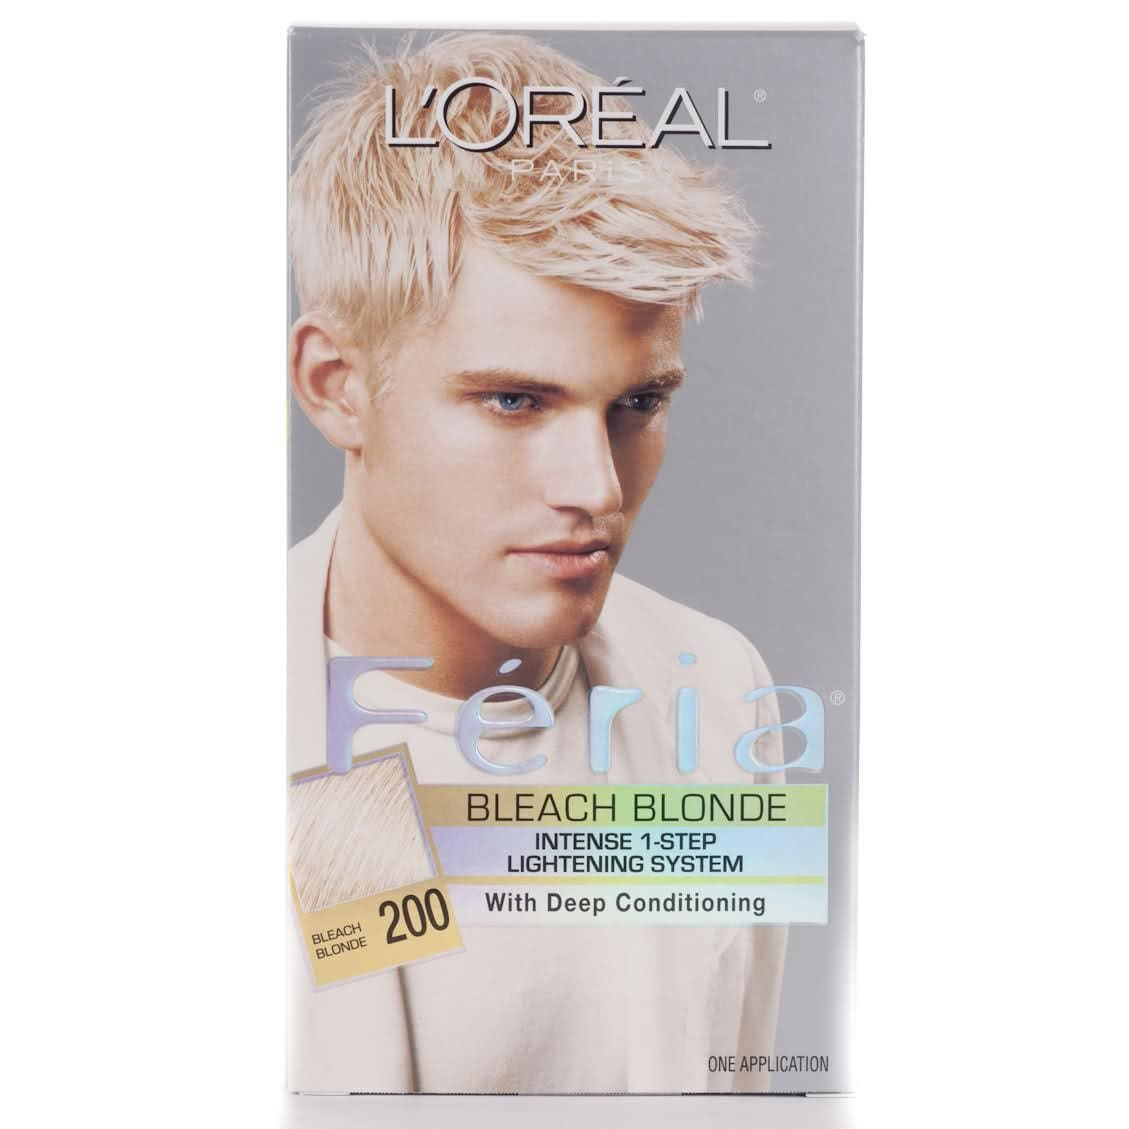 Hair Bleach For Men : Bleach Blonde Hair - Hairstyle